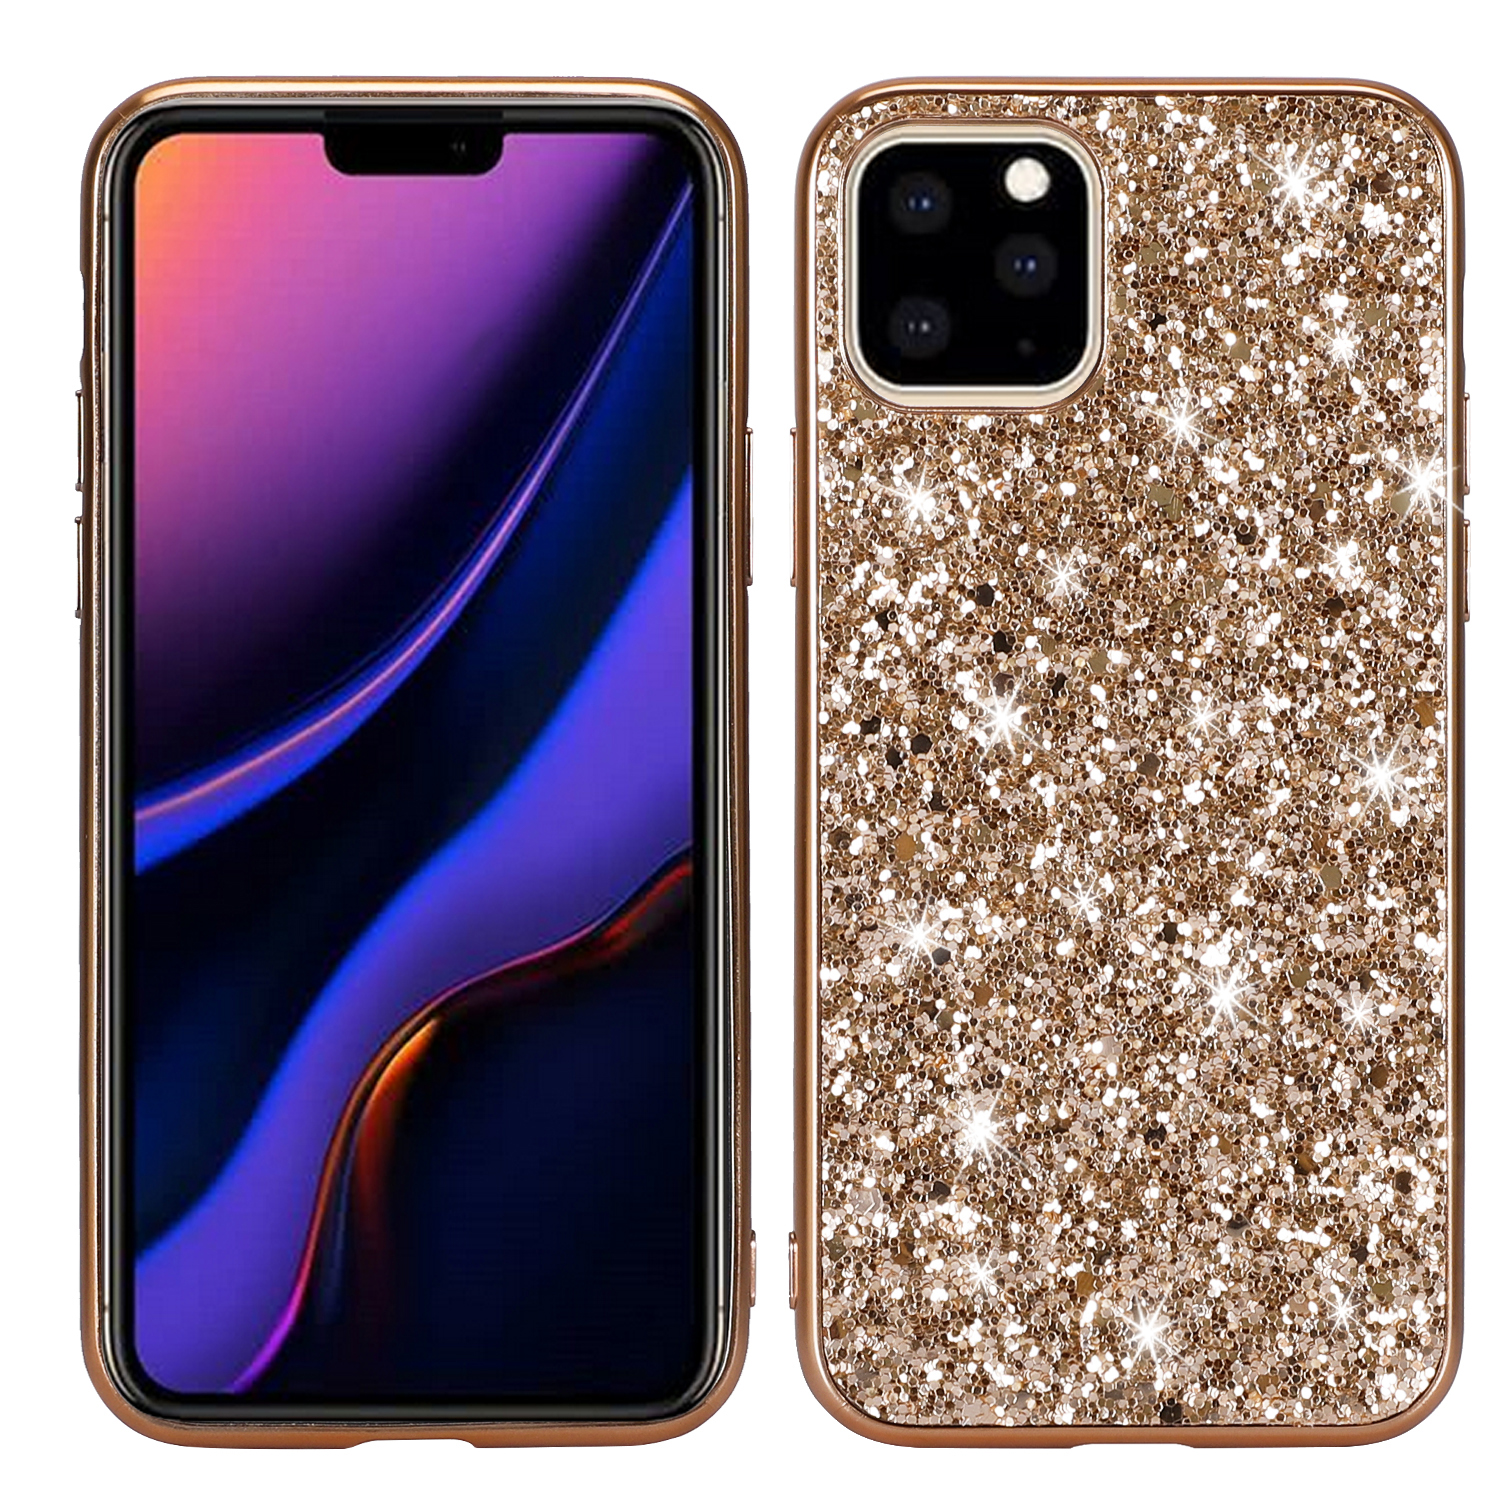 Shiny Glitter Girls Case for iPhone 11/11 Pro/11 Pro Max 4